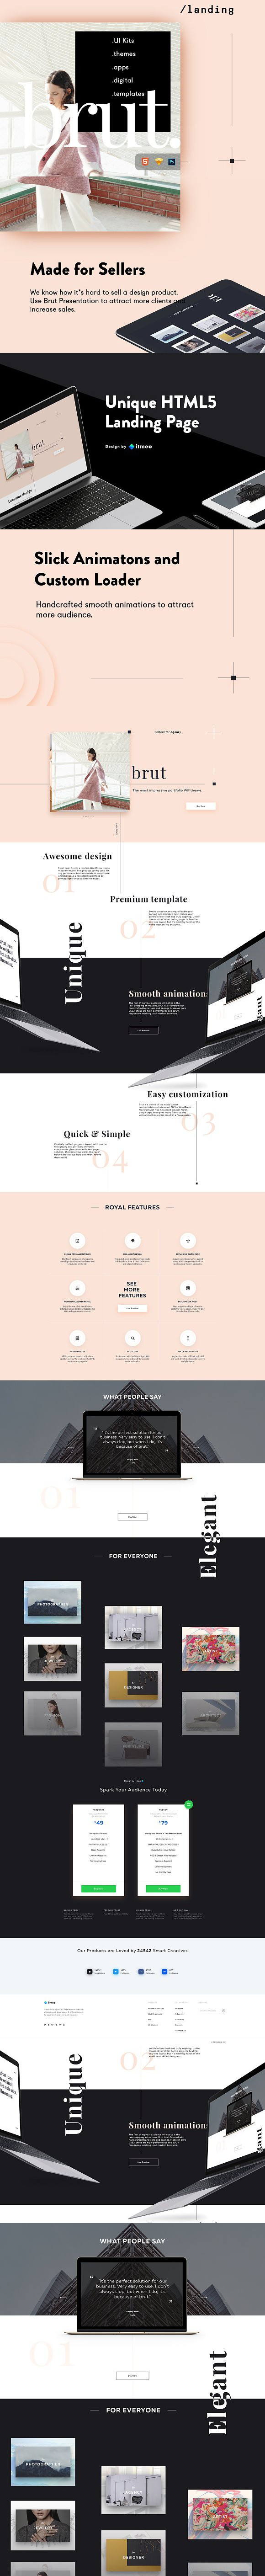 Brut Landing Page . HTML/CSS Themes | HTML/CSS Themes | Pinterest ...